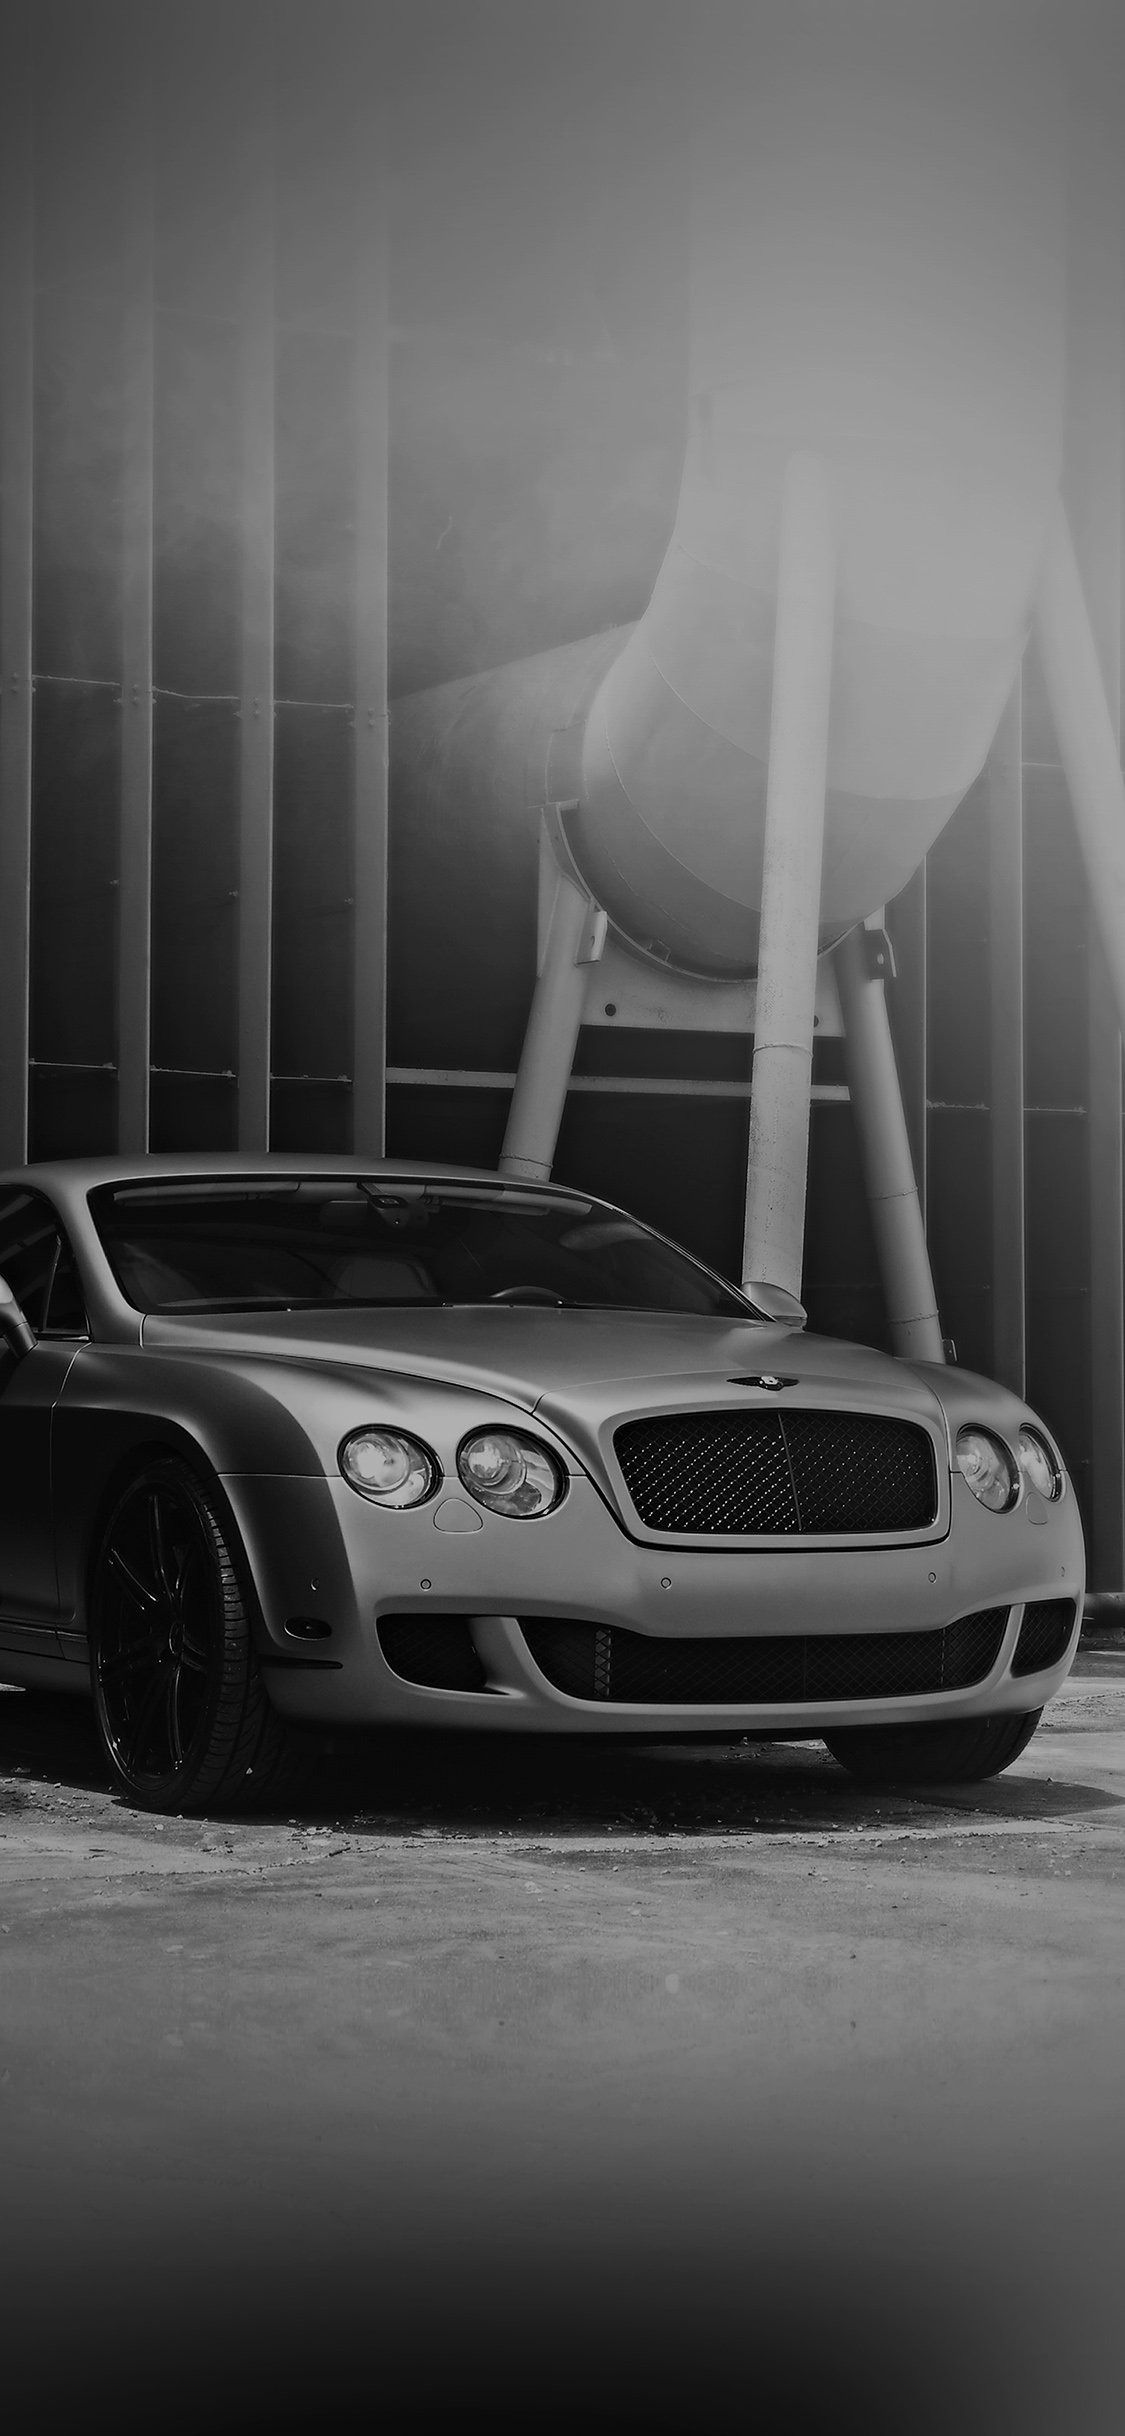 Aj64 Bentley Motors Bw Dark Car Park Art City Wallpaper